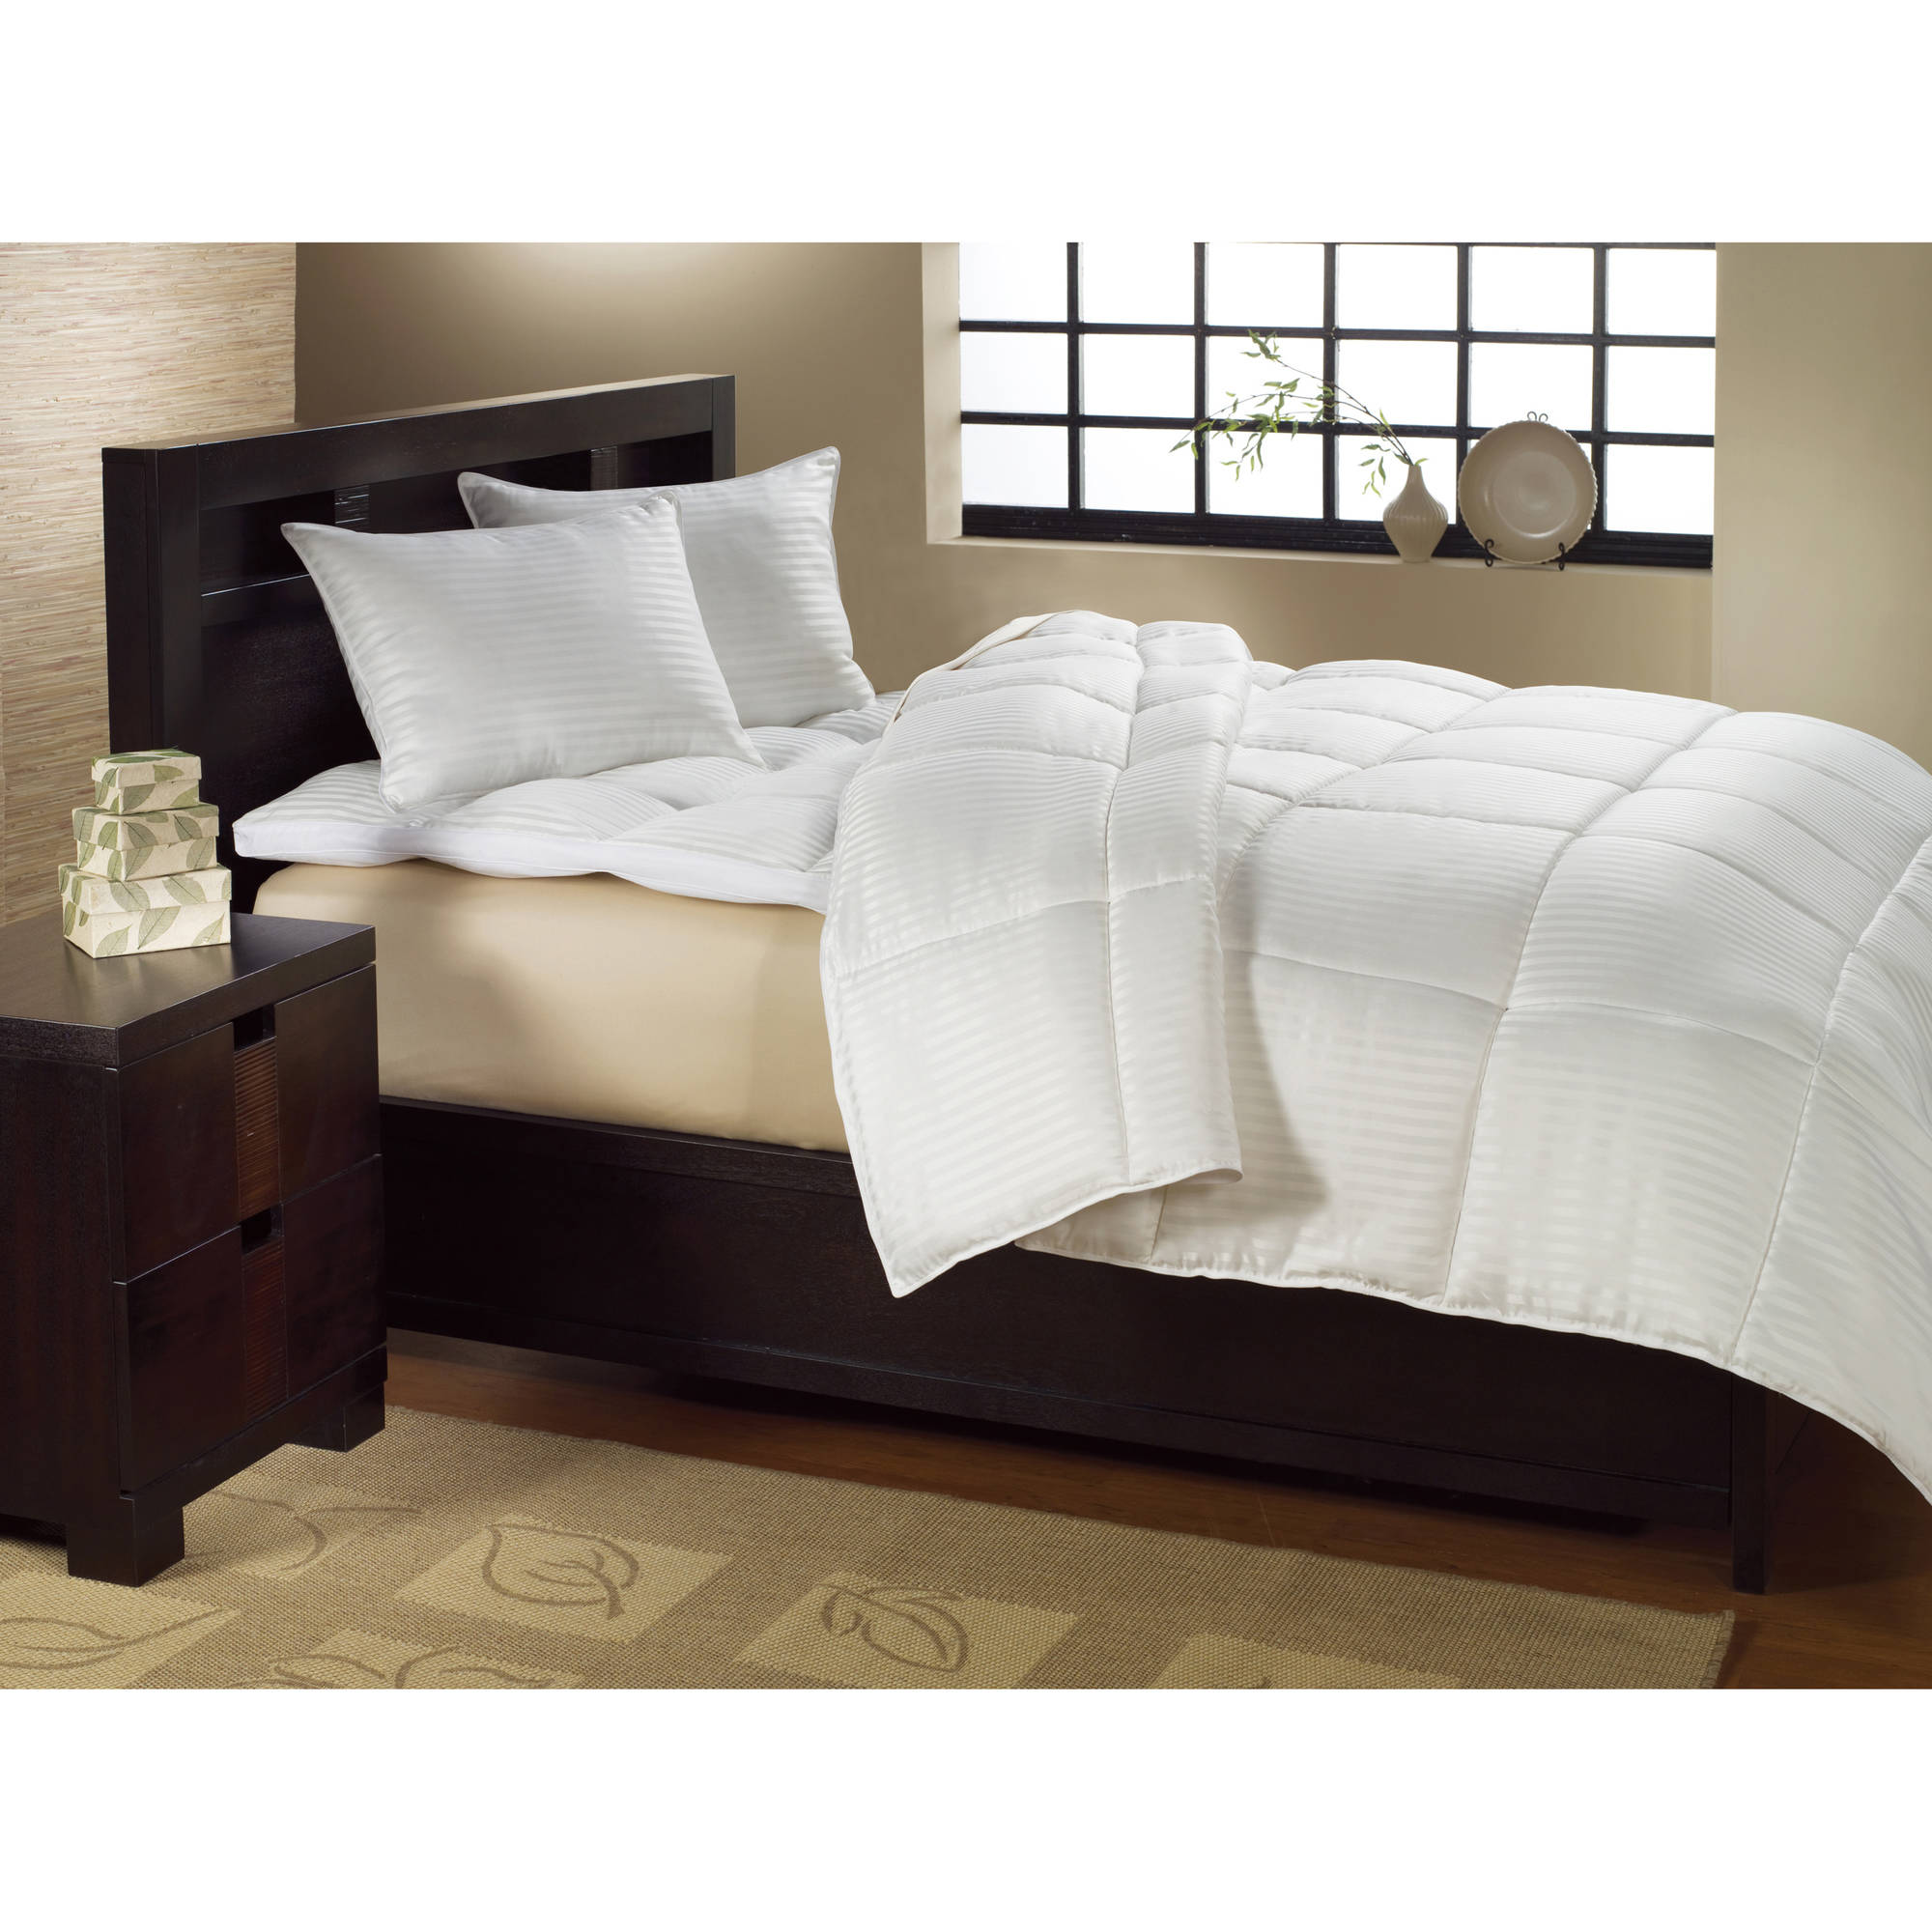 Better Homes and Gardens Down Fusion Lightweight Warmth Comforter, Multiple Sizes